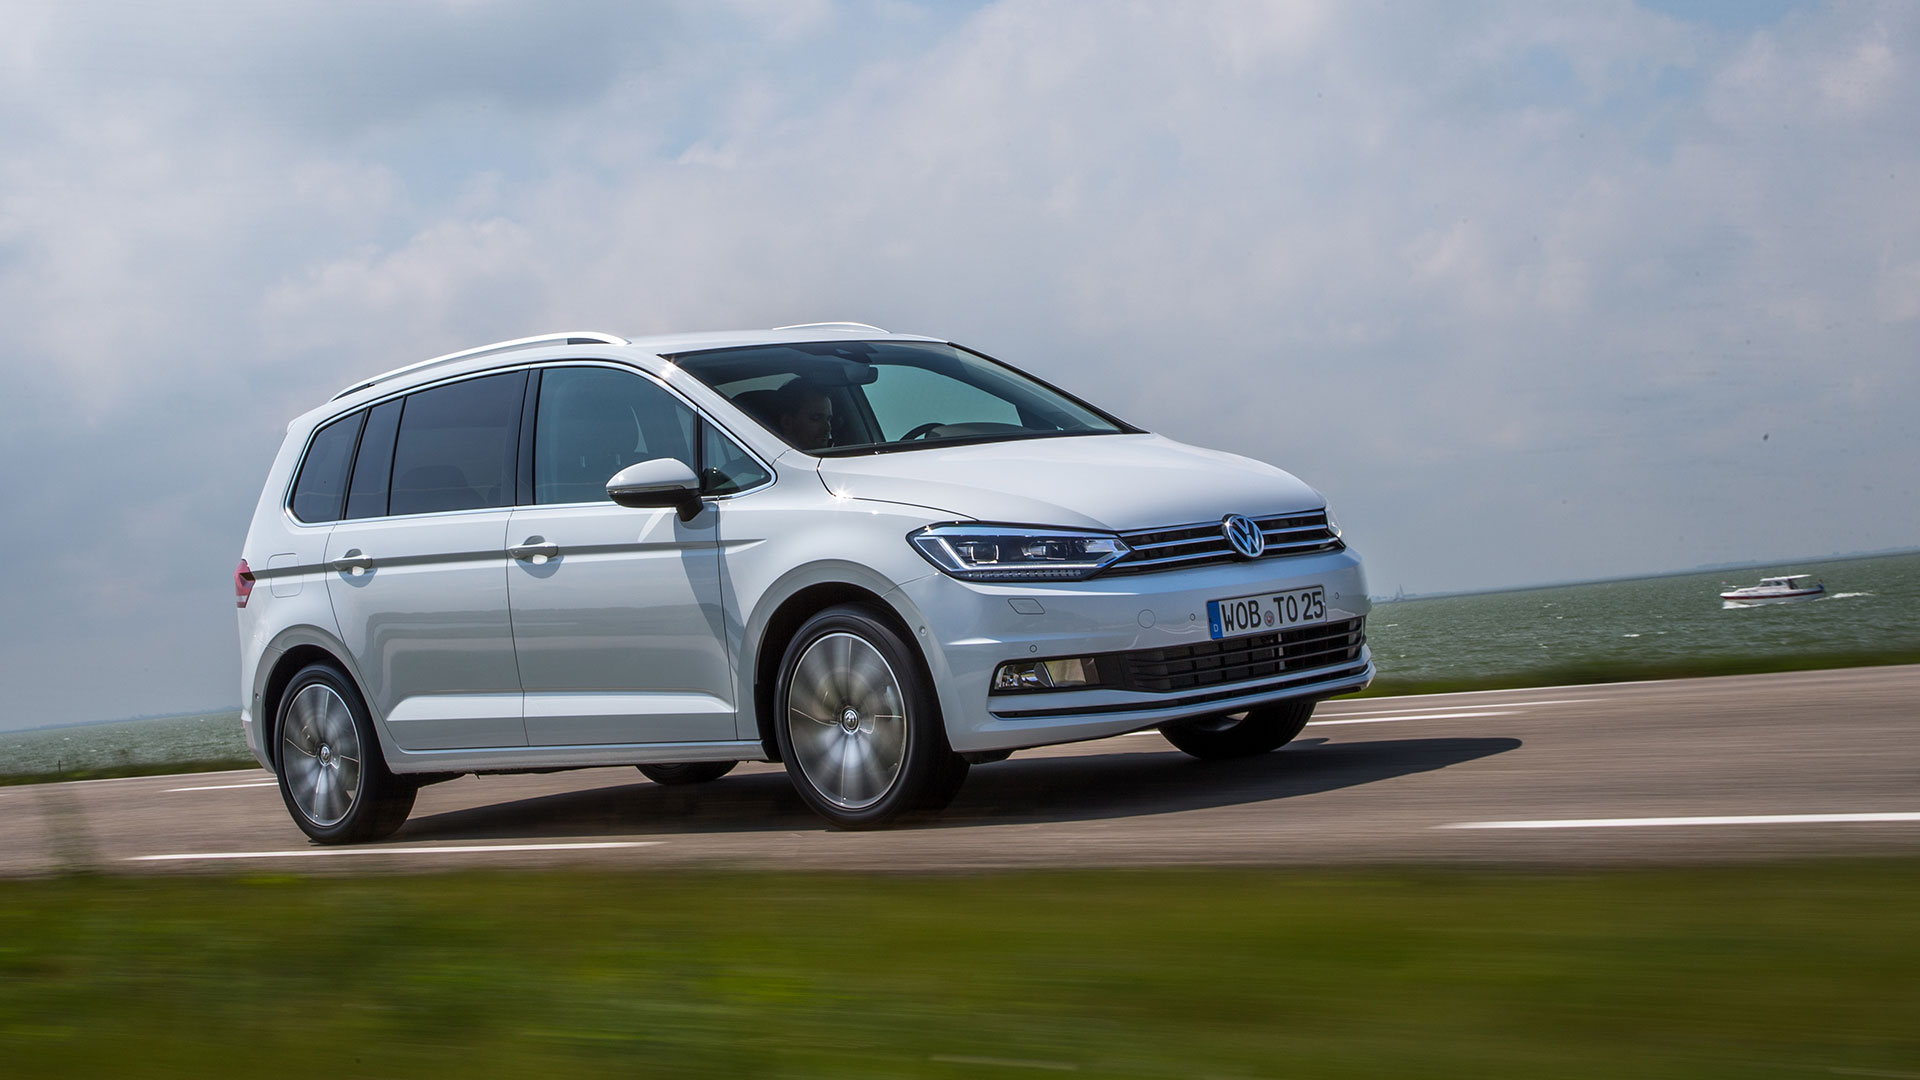 Volkswagen Touran MPV (2015 - ) review